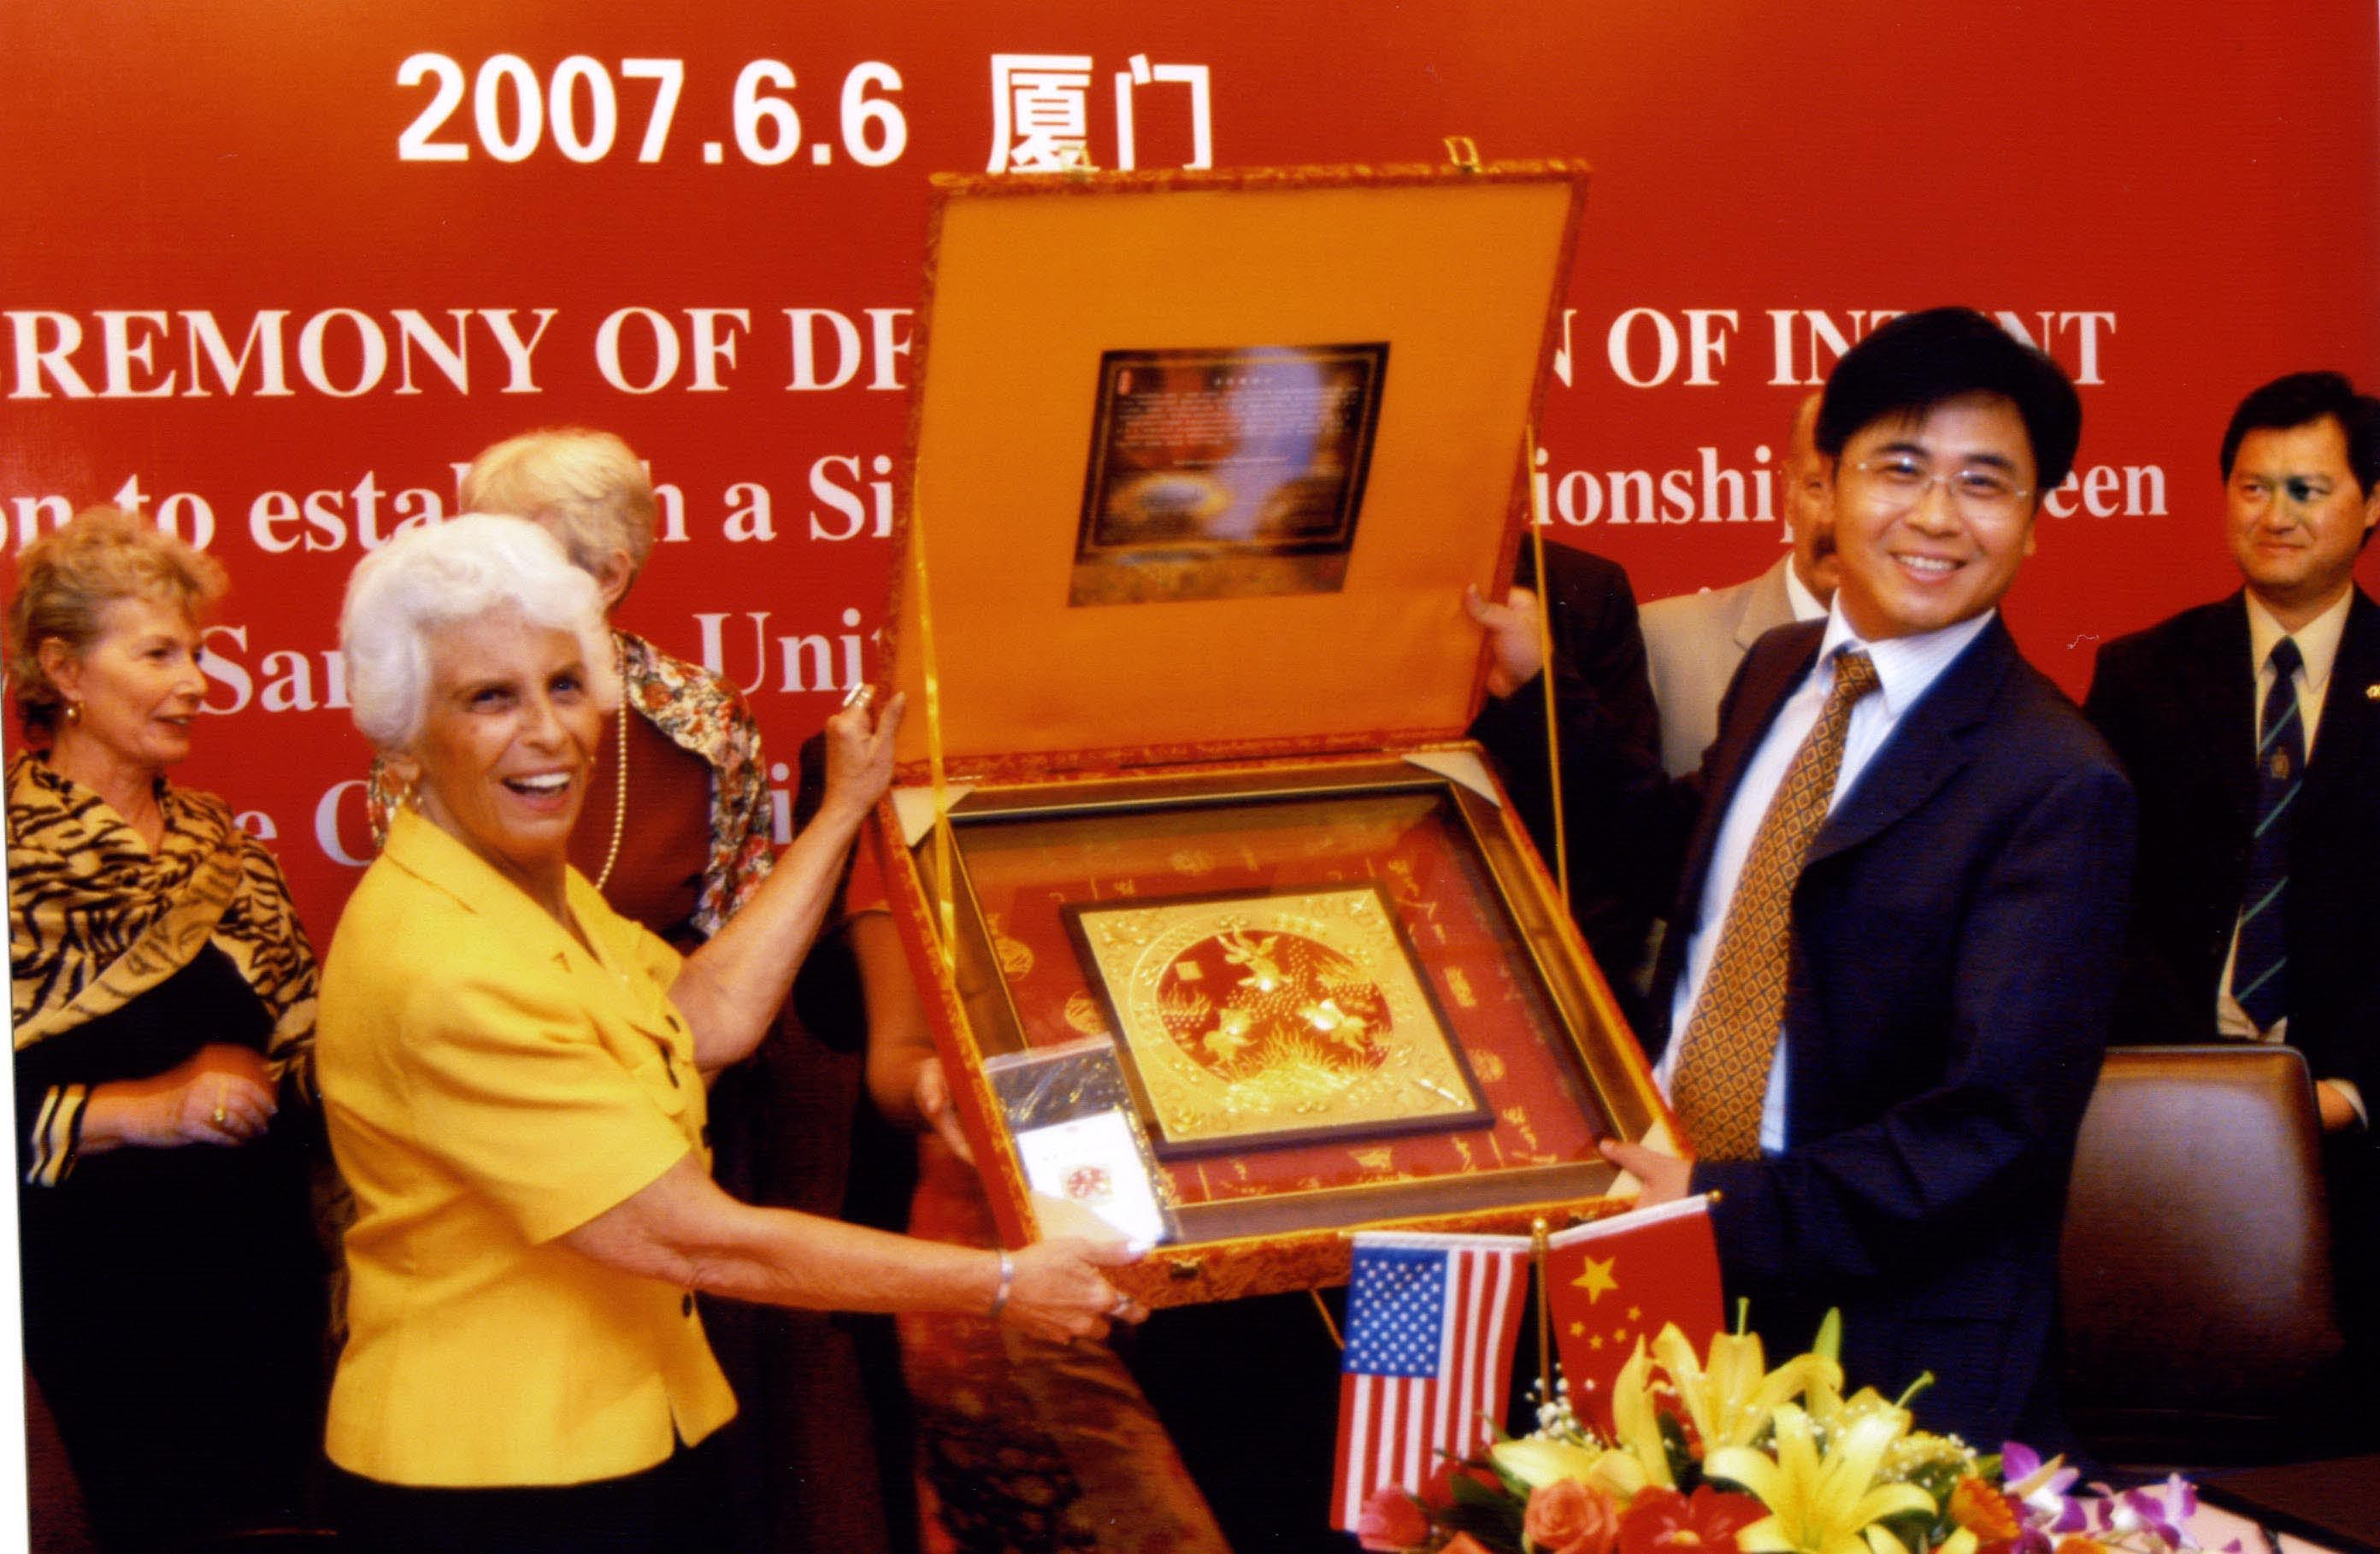 Mayor Lou Ann Palmer accepts a gift at formal twinning ceremonies between Xiamen, China and Sarasota in June 2007